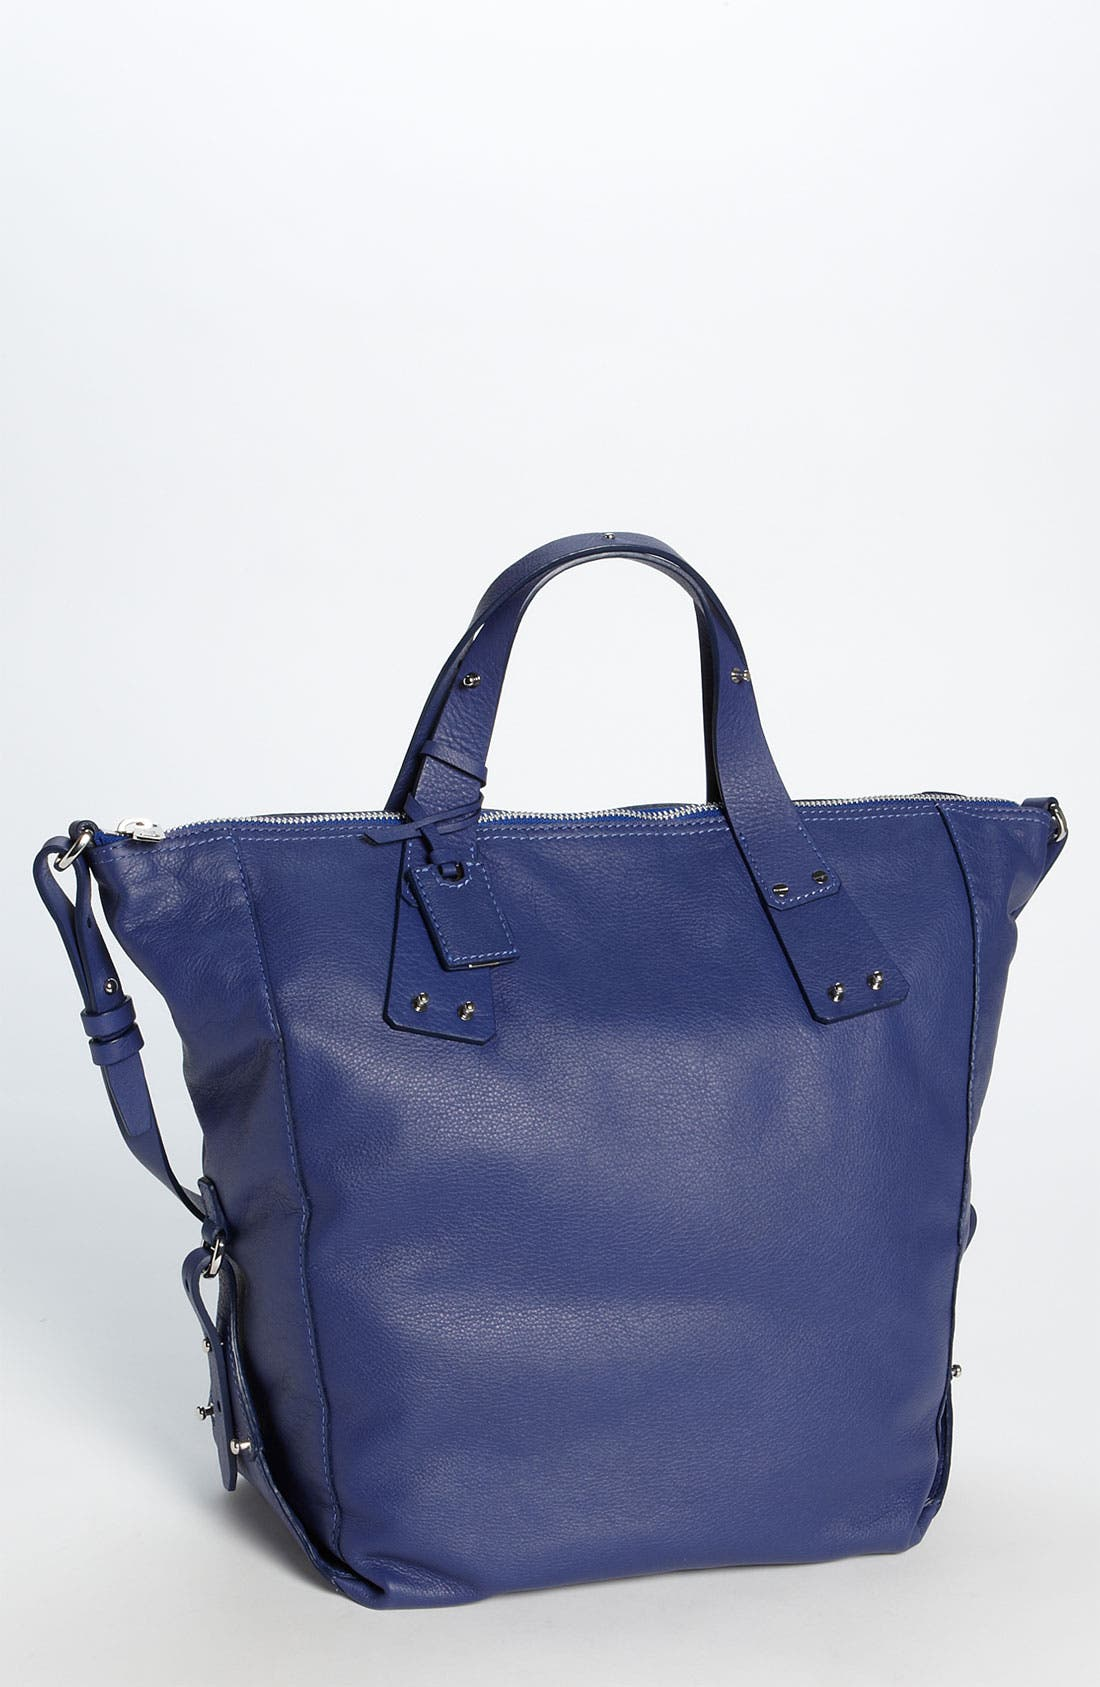 Alternate Image 1 Selected - McQ by Alexander McQueen 'Stepney' Tote